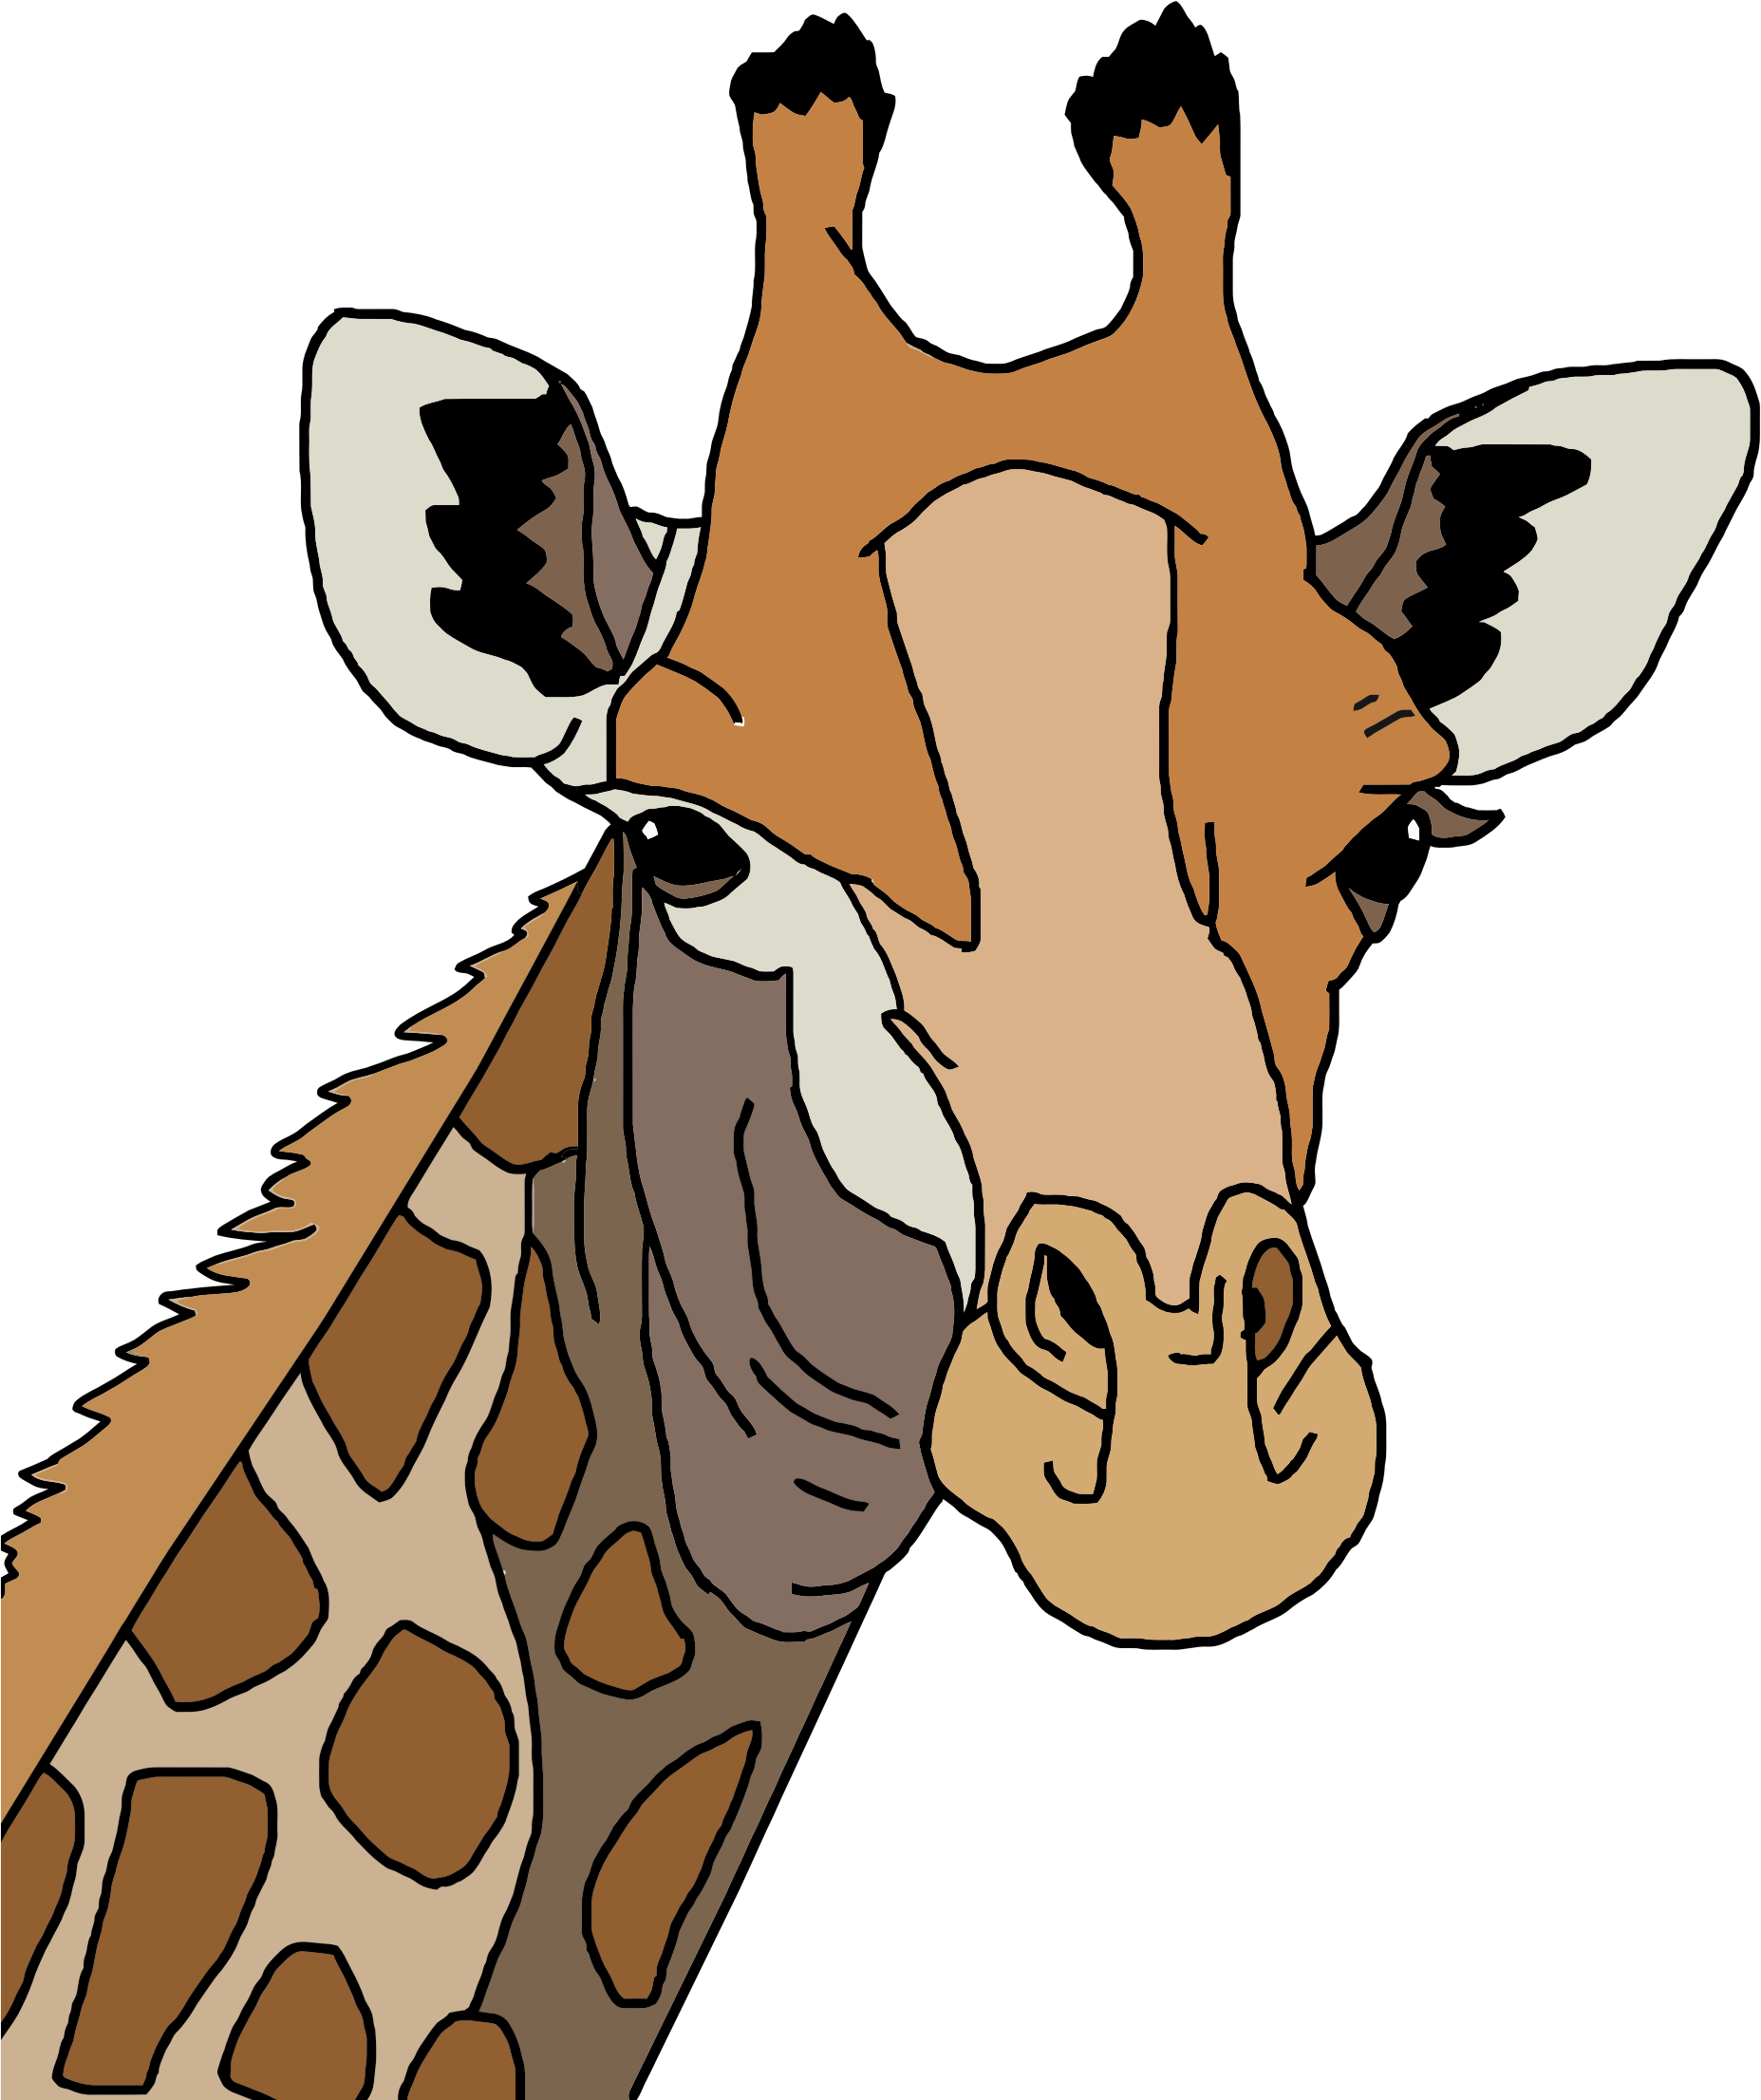 Colored Giraffe by GDJ